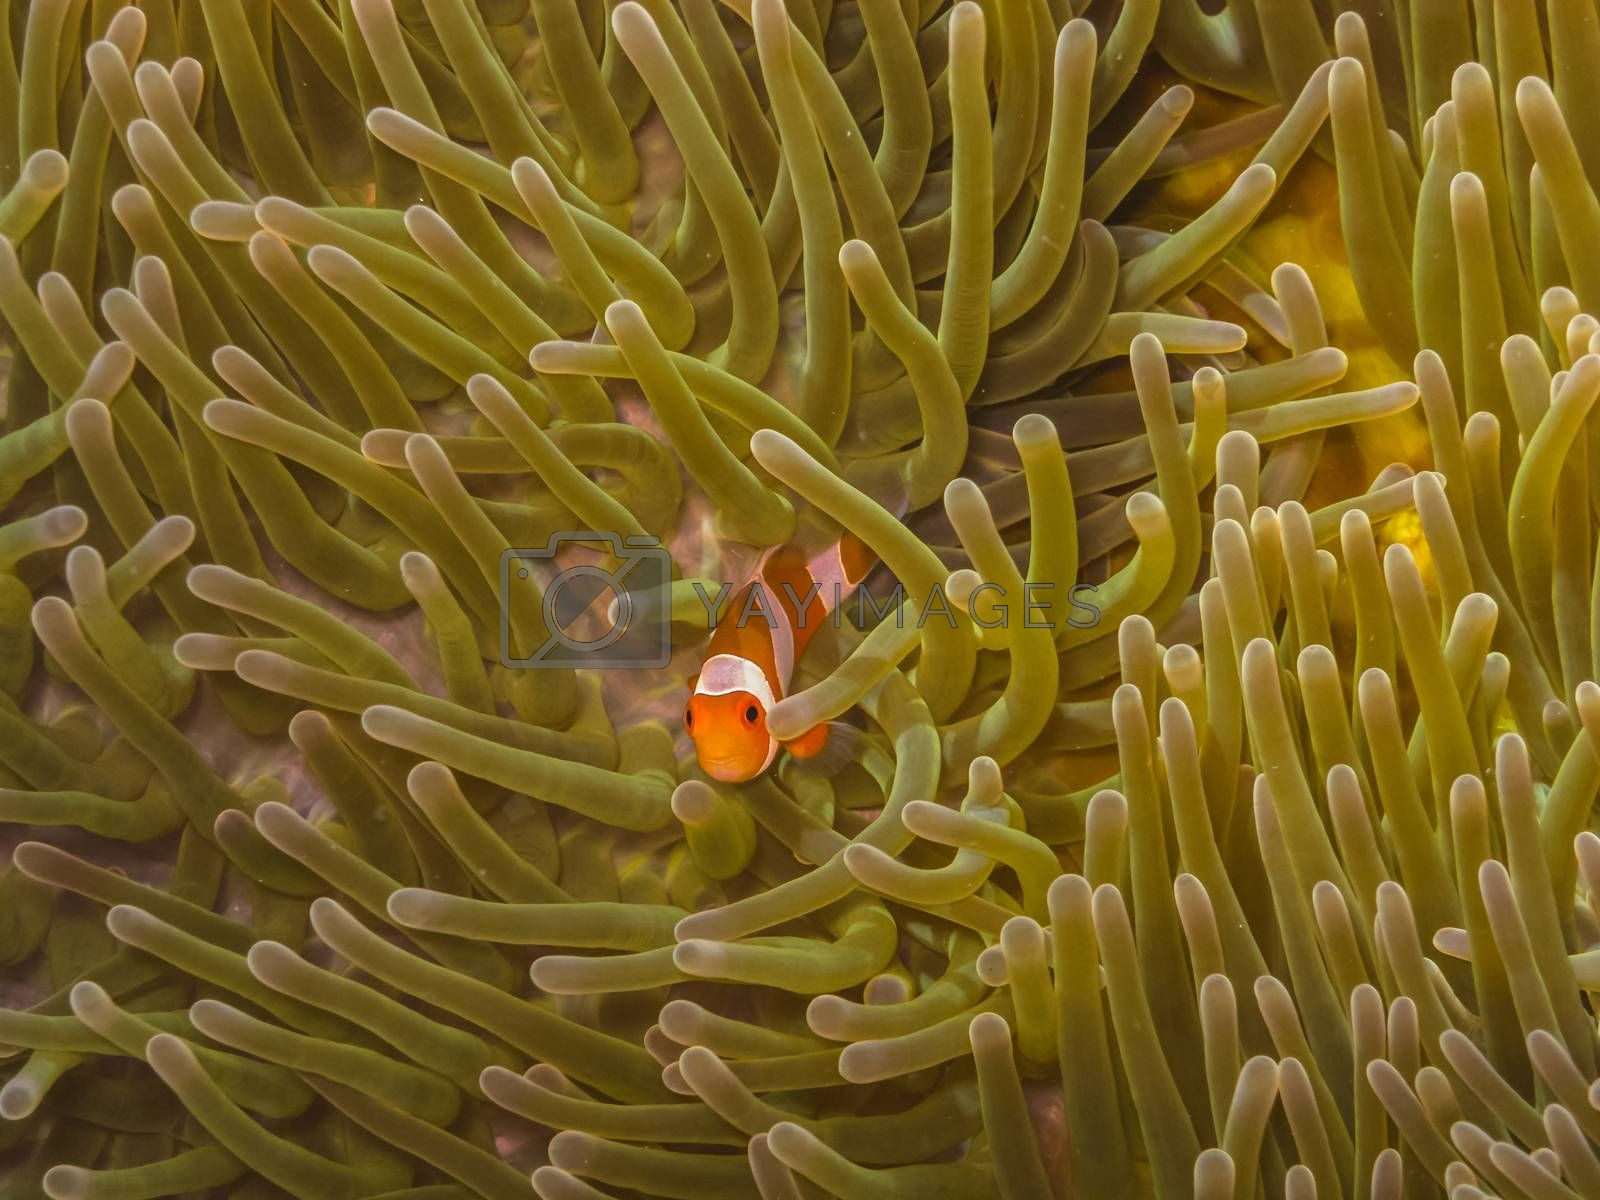 baby anemonefish in the sea